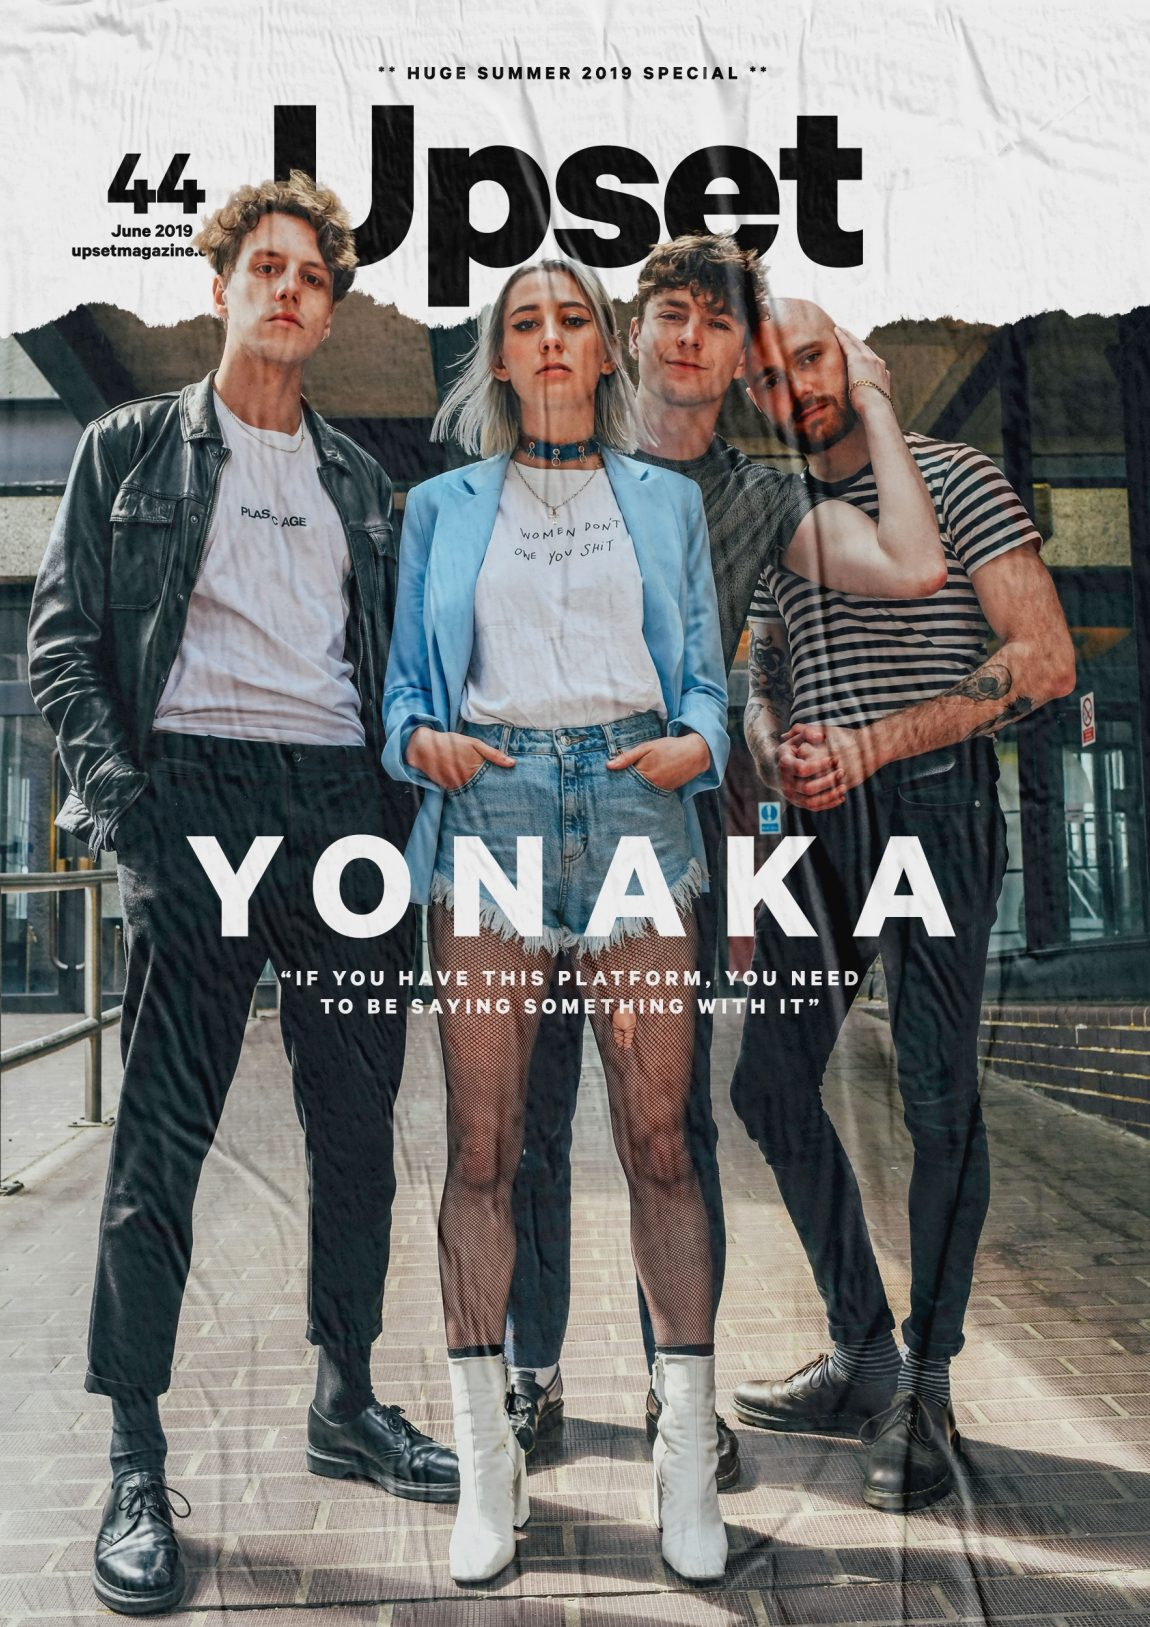 June 2019 (Yonaka cover)